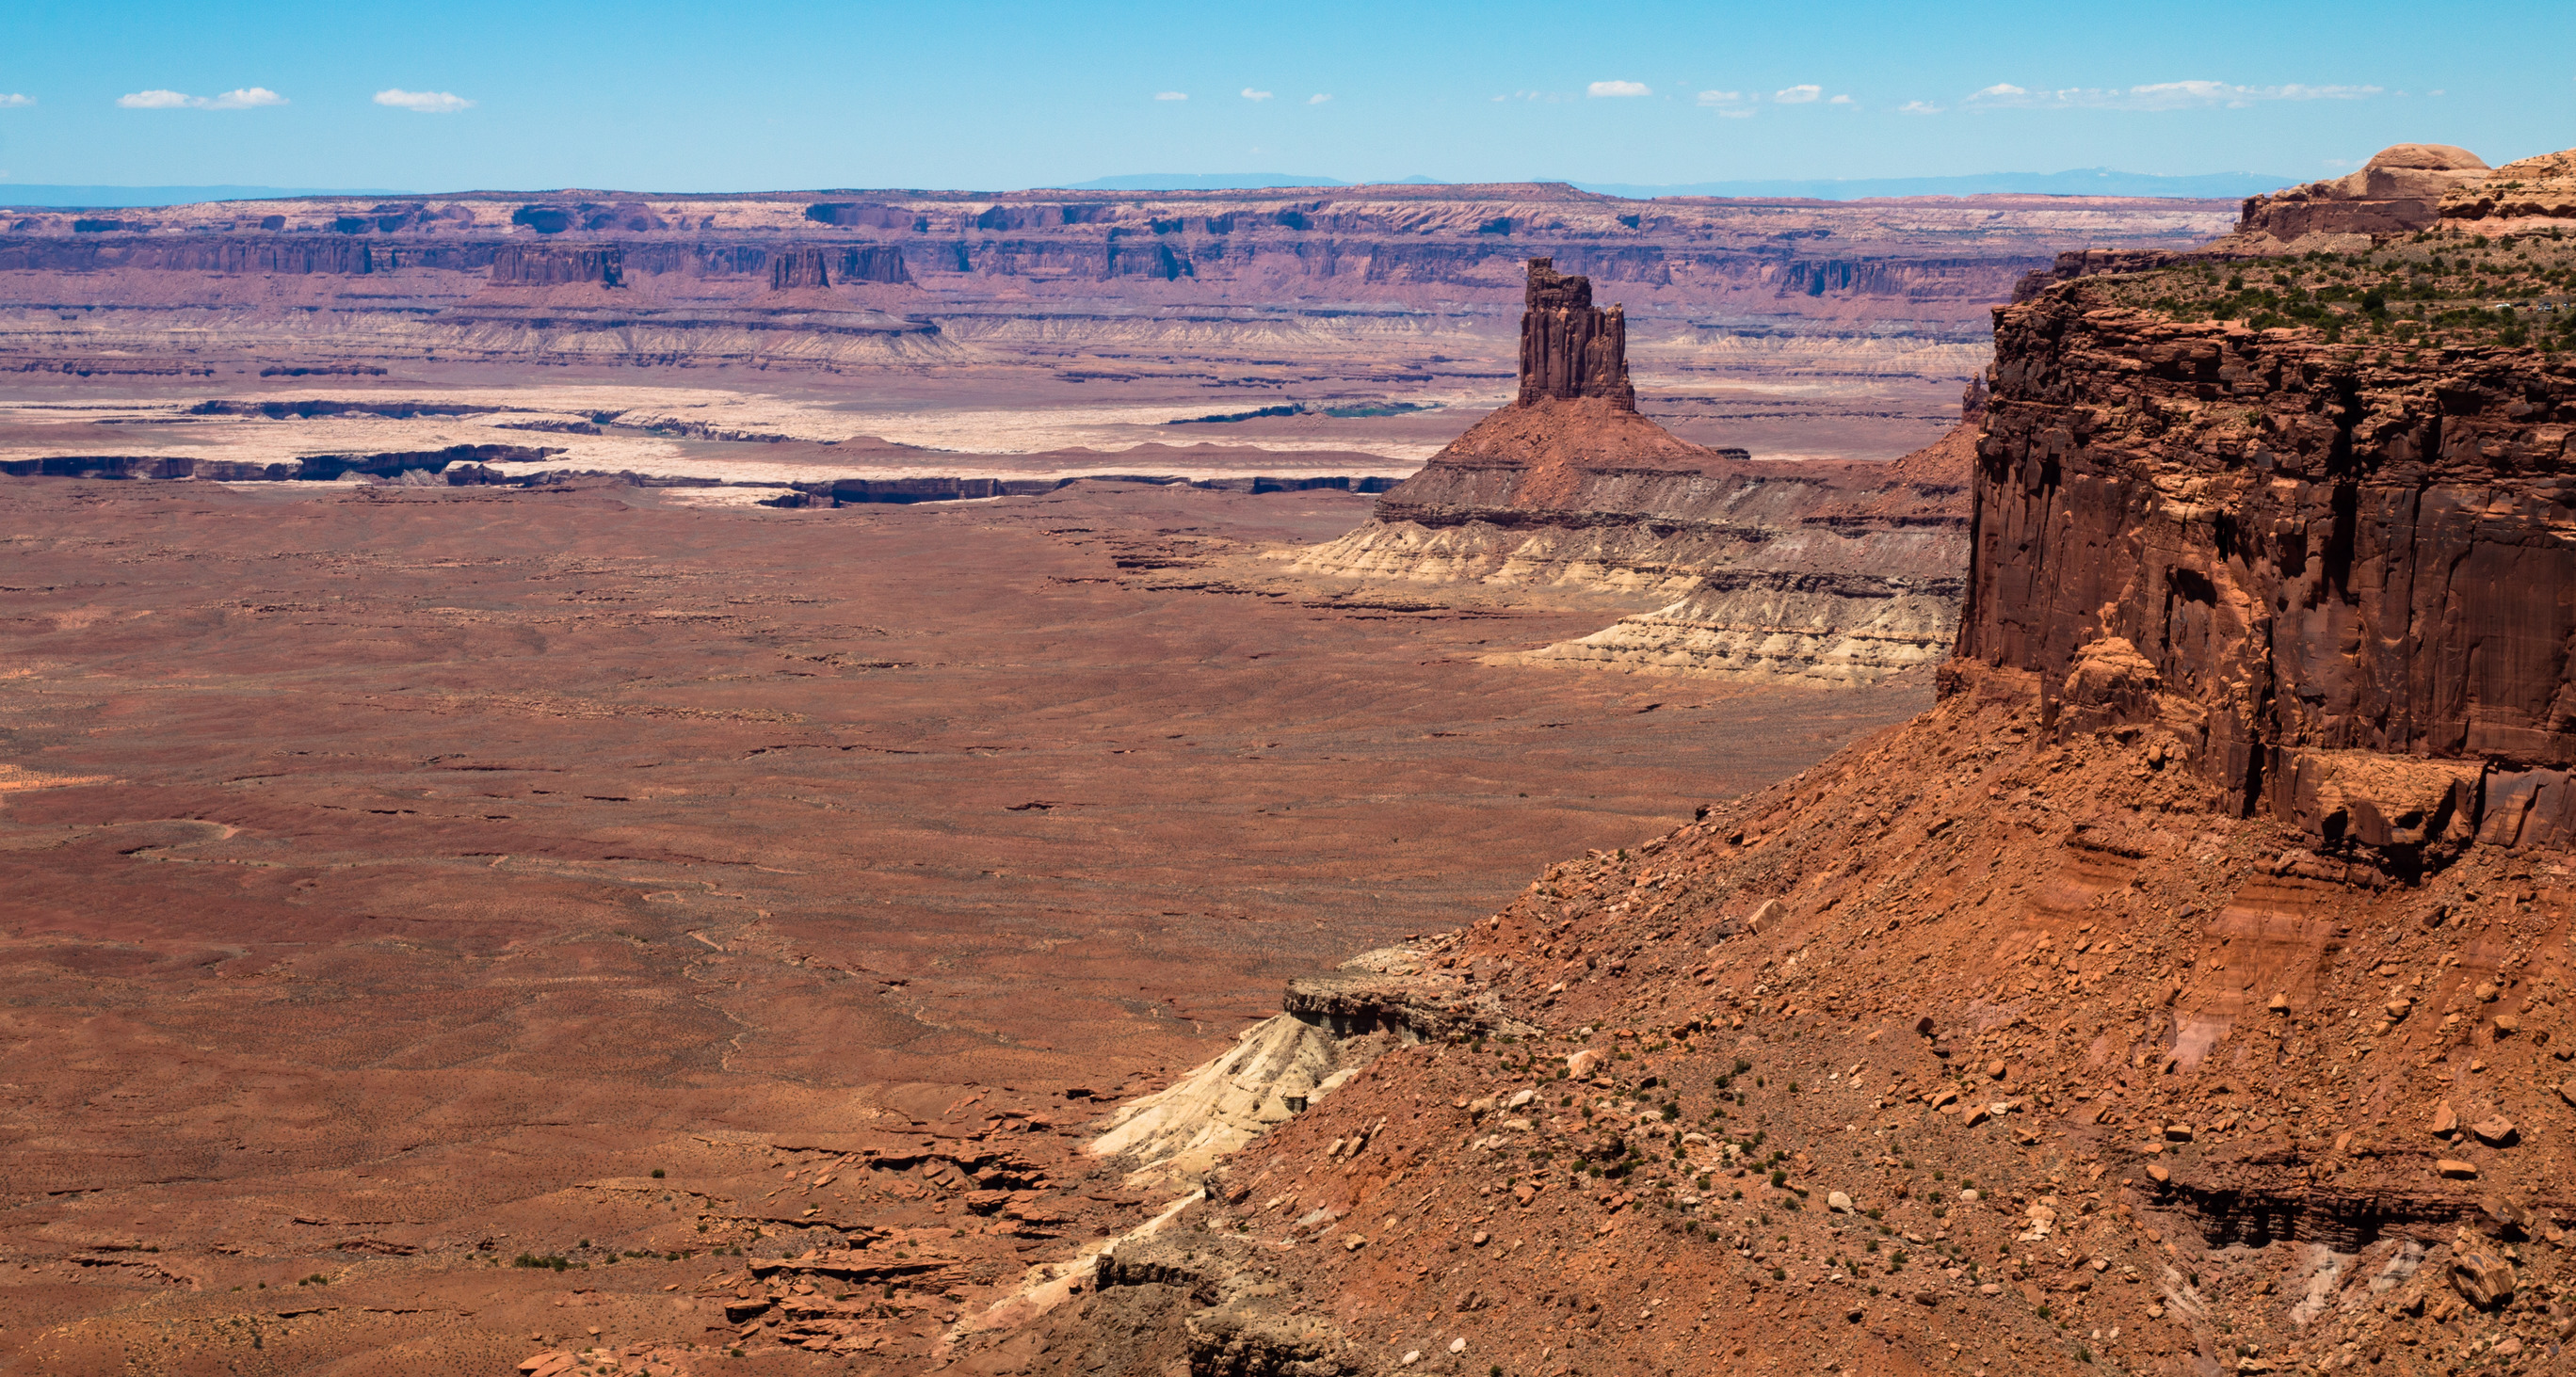 Landscape view of Canyonlands National Park